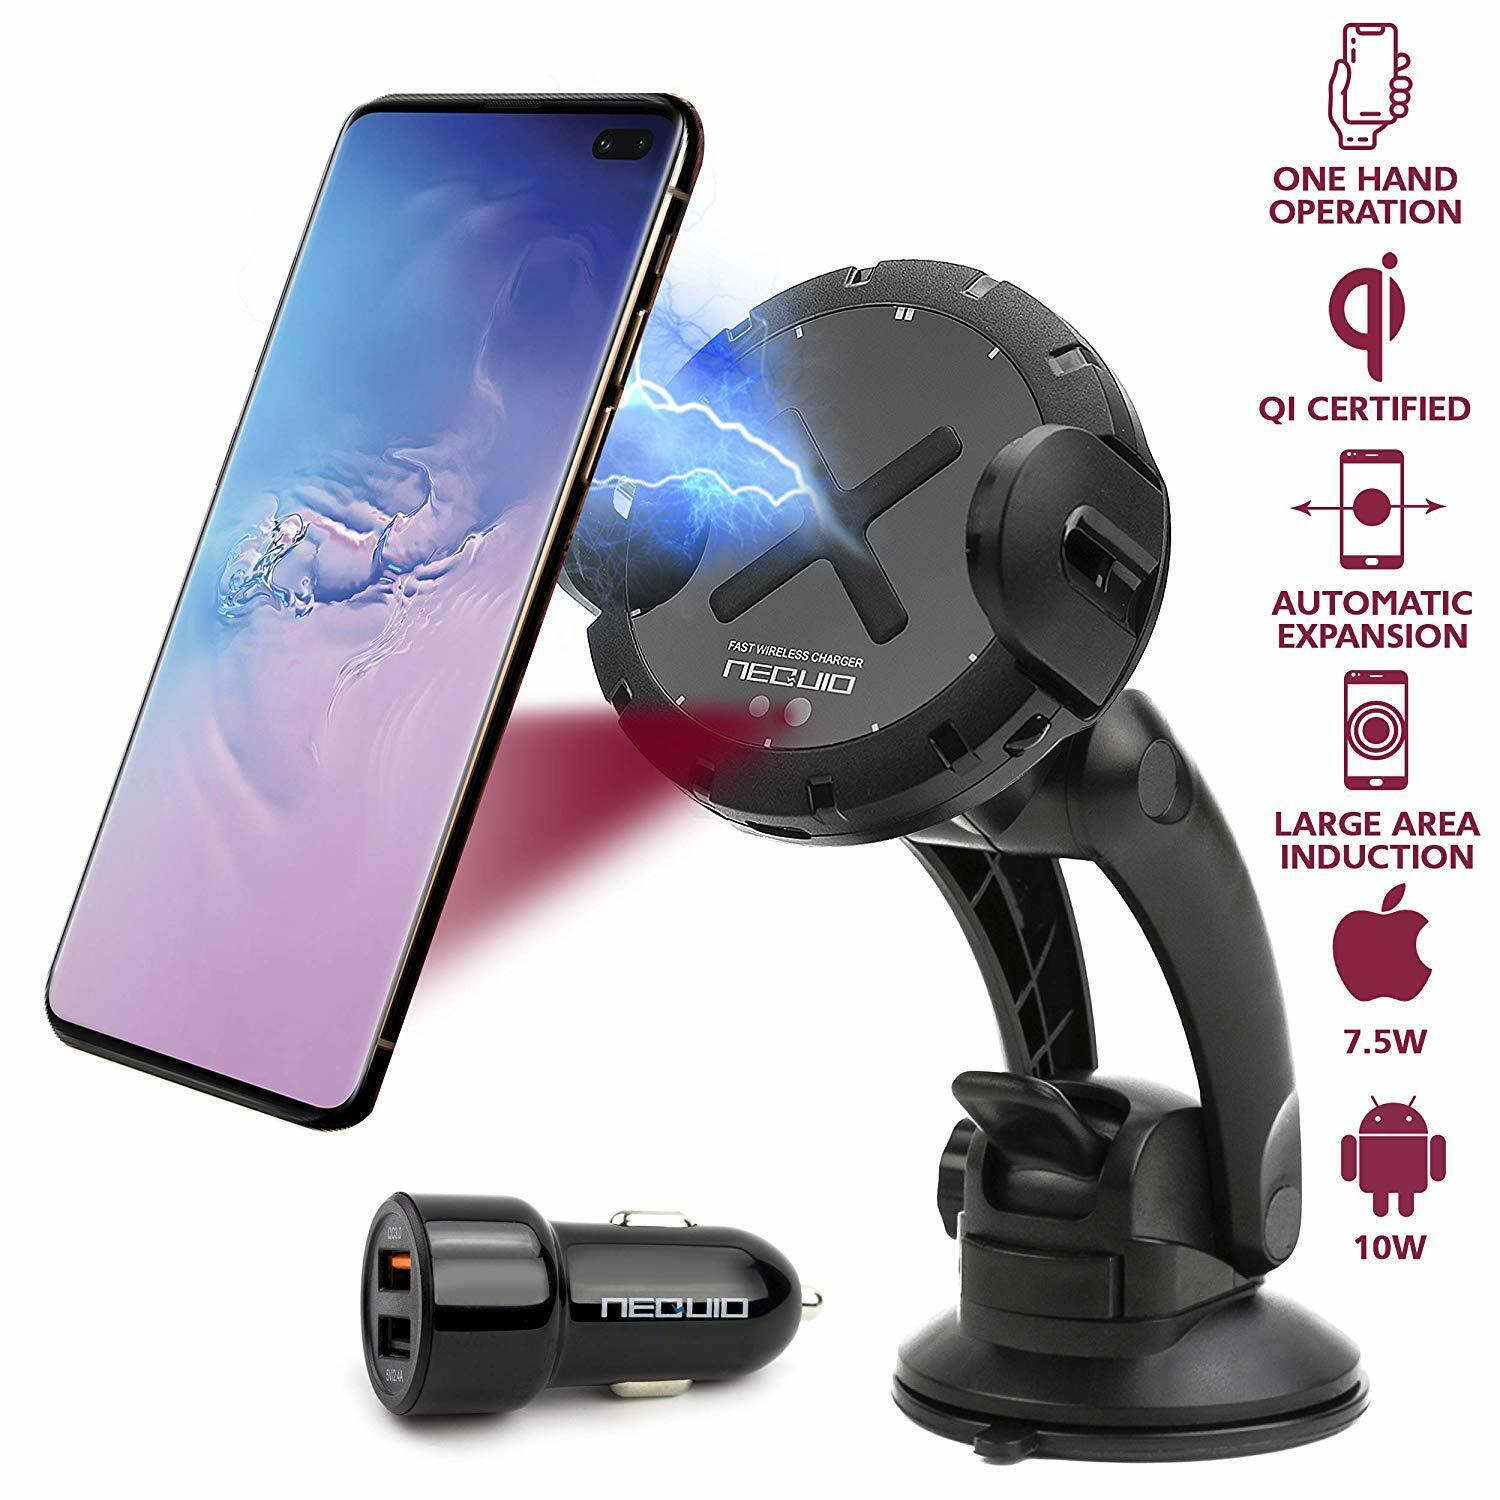 Wireless Car Charger, 15W Qi Certified with Infrared Sensor